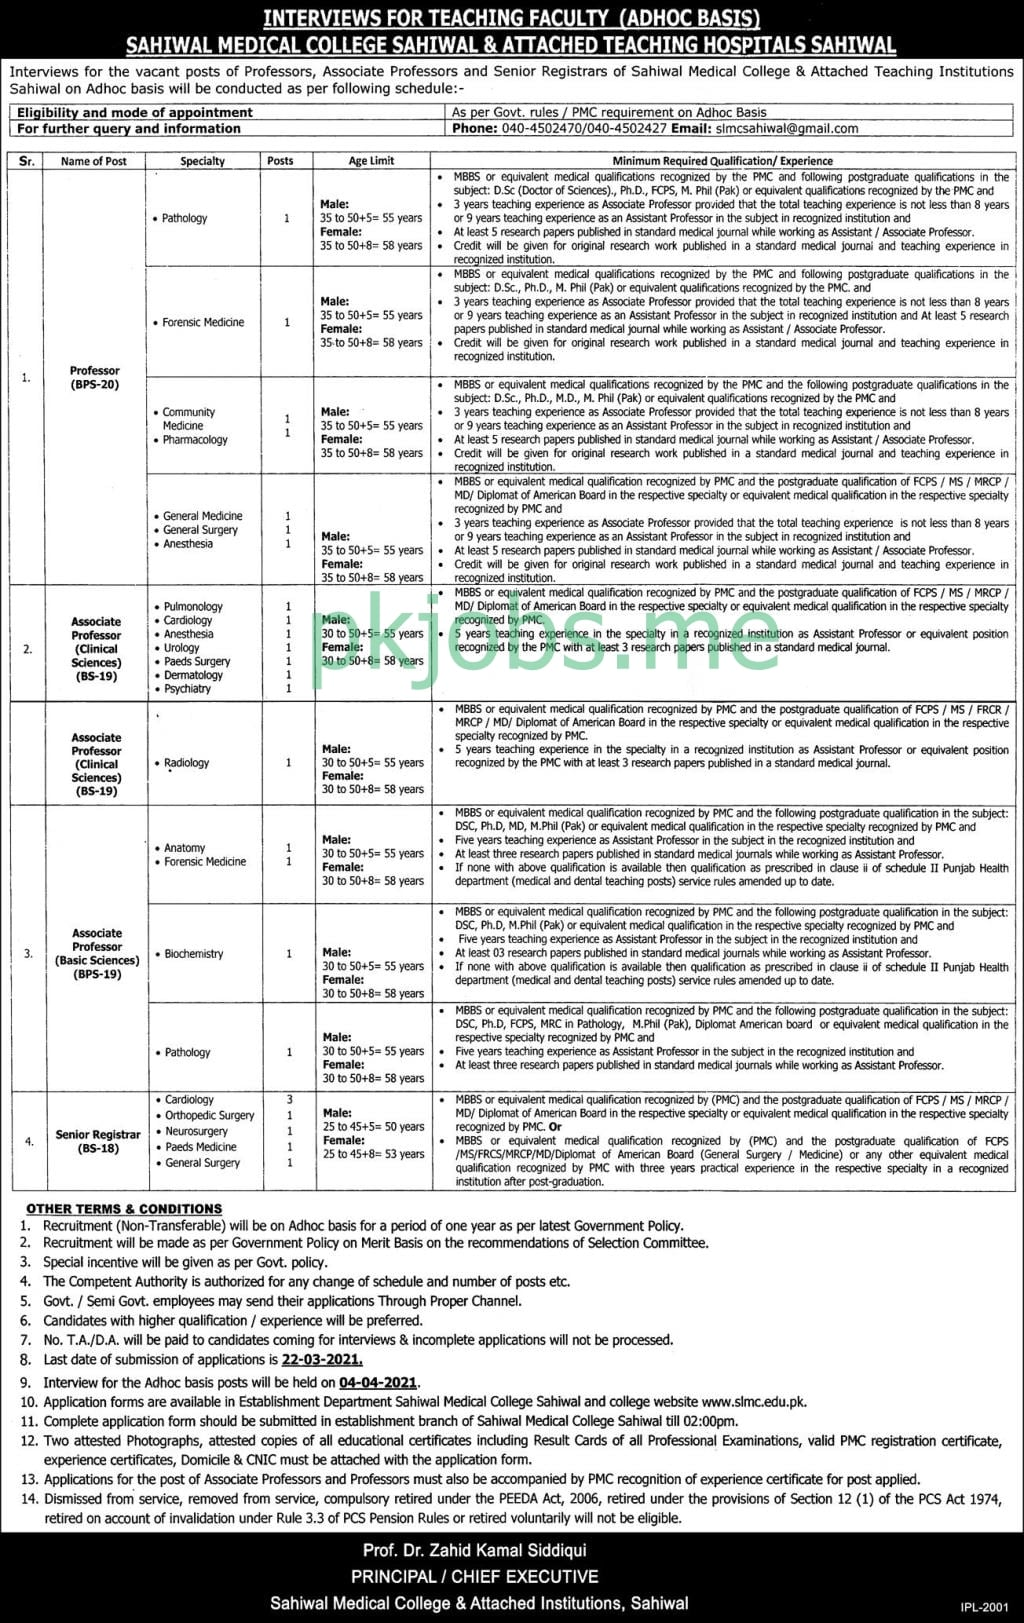 Latest Sahiwal Medical College Teaching Faculty Posts 2021 Ad2